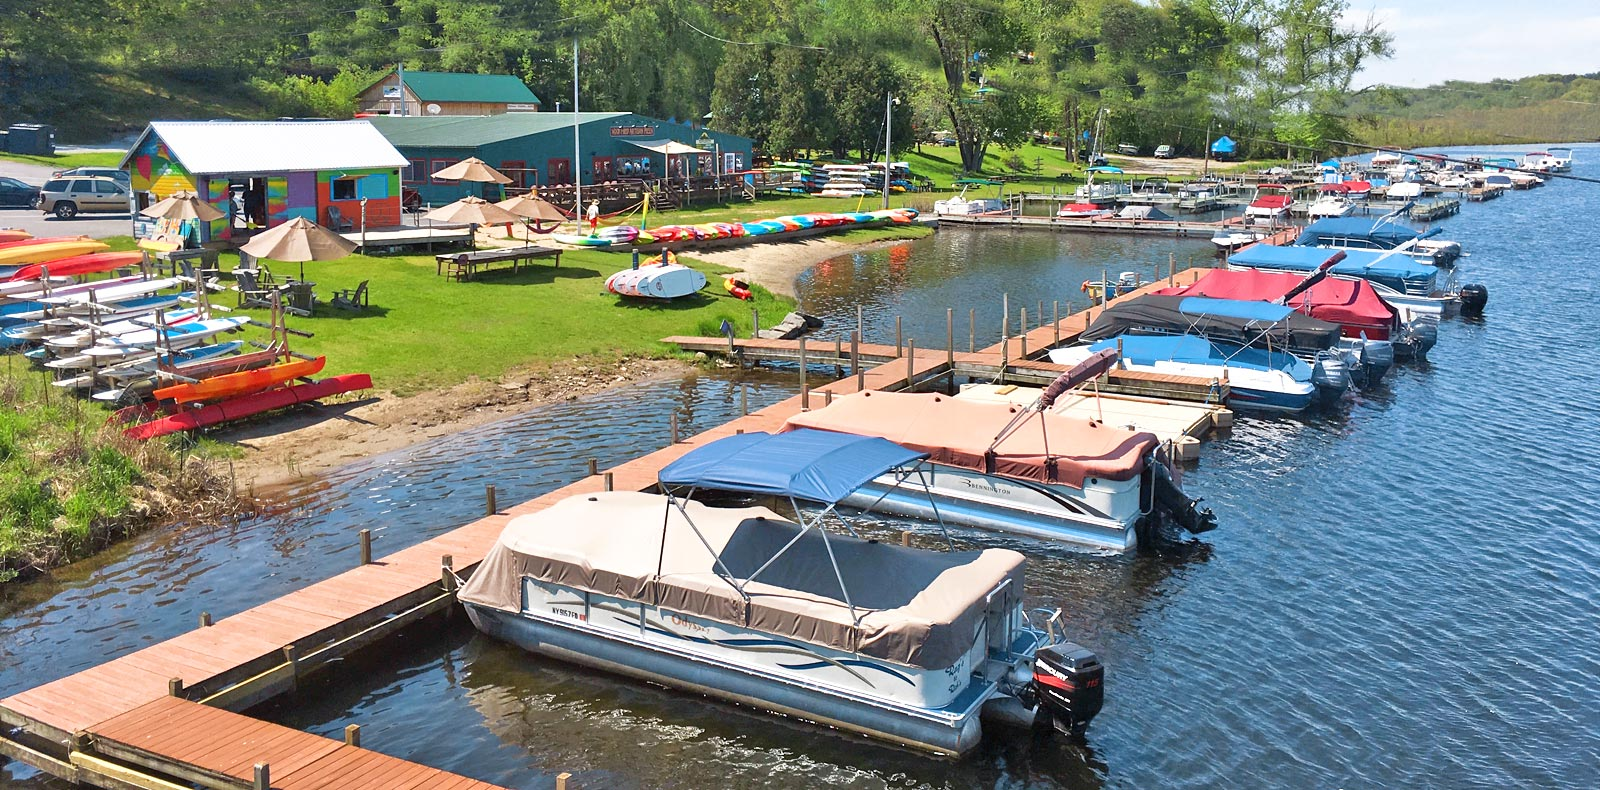 Fish creek marina saratoga lake saratoga springs ny for Saratoga lake fishing